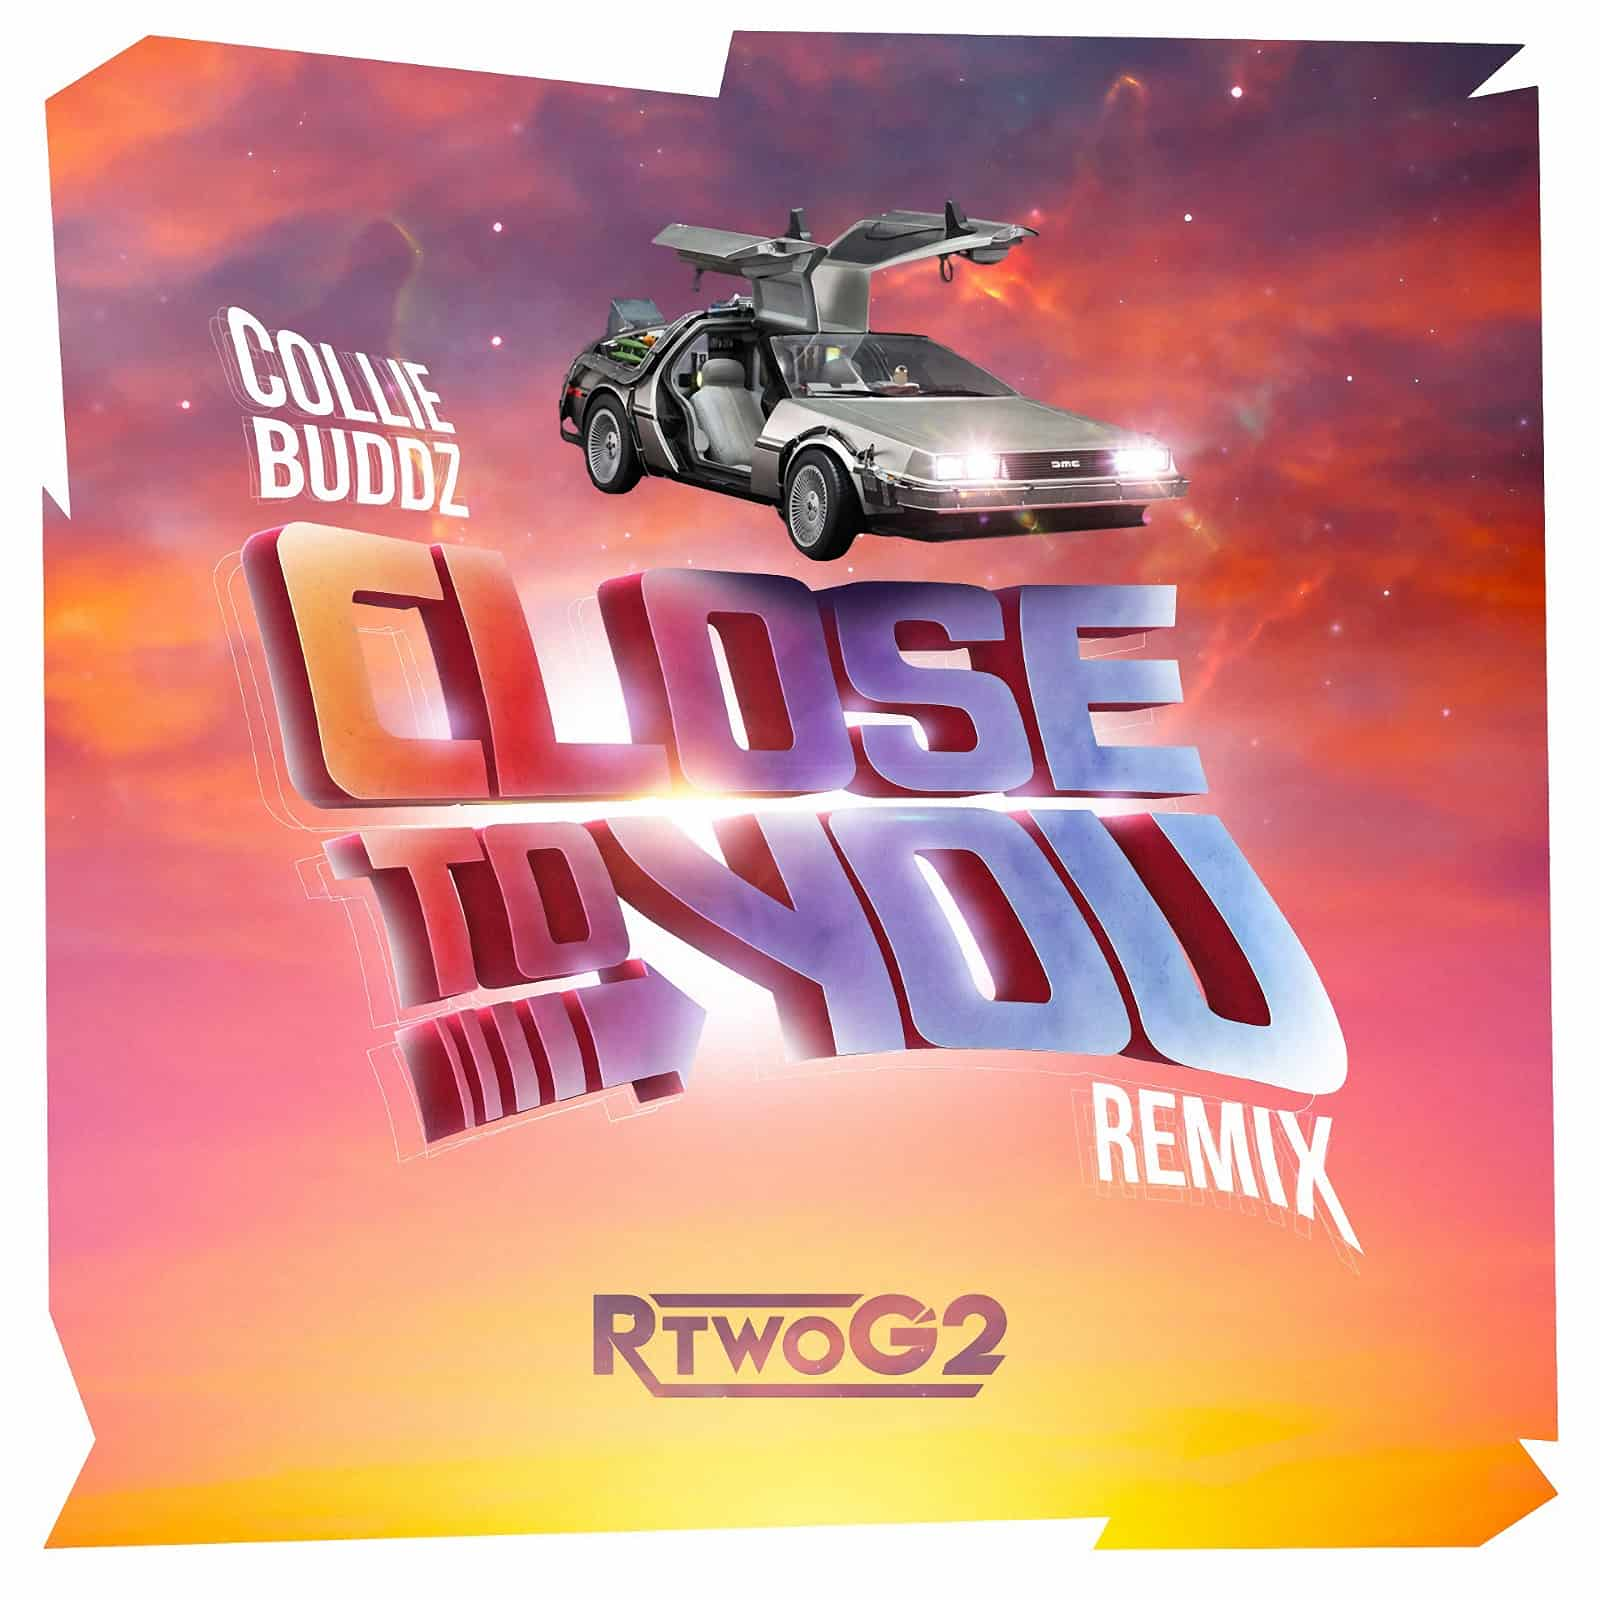 Collie Buddz - Close to You (RTwoG2 Official Remix)